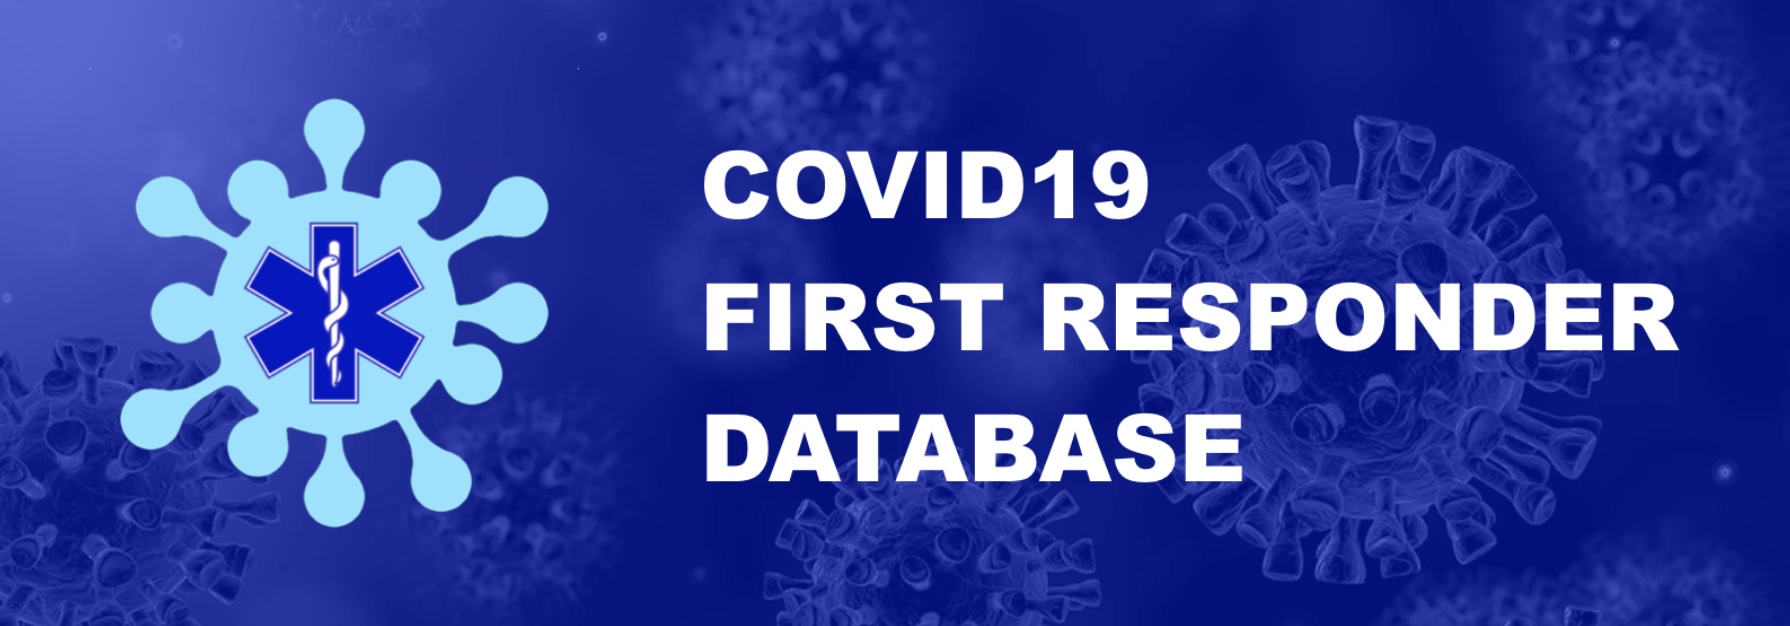 Covid first responder data base